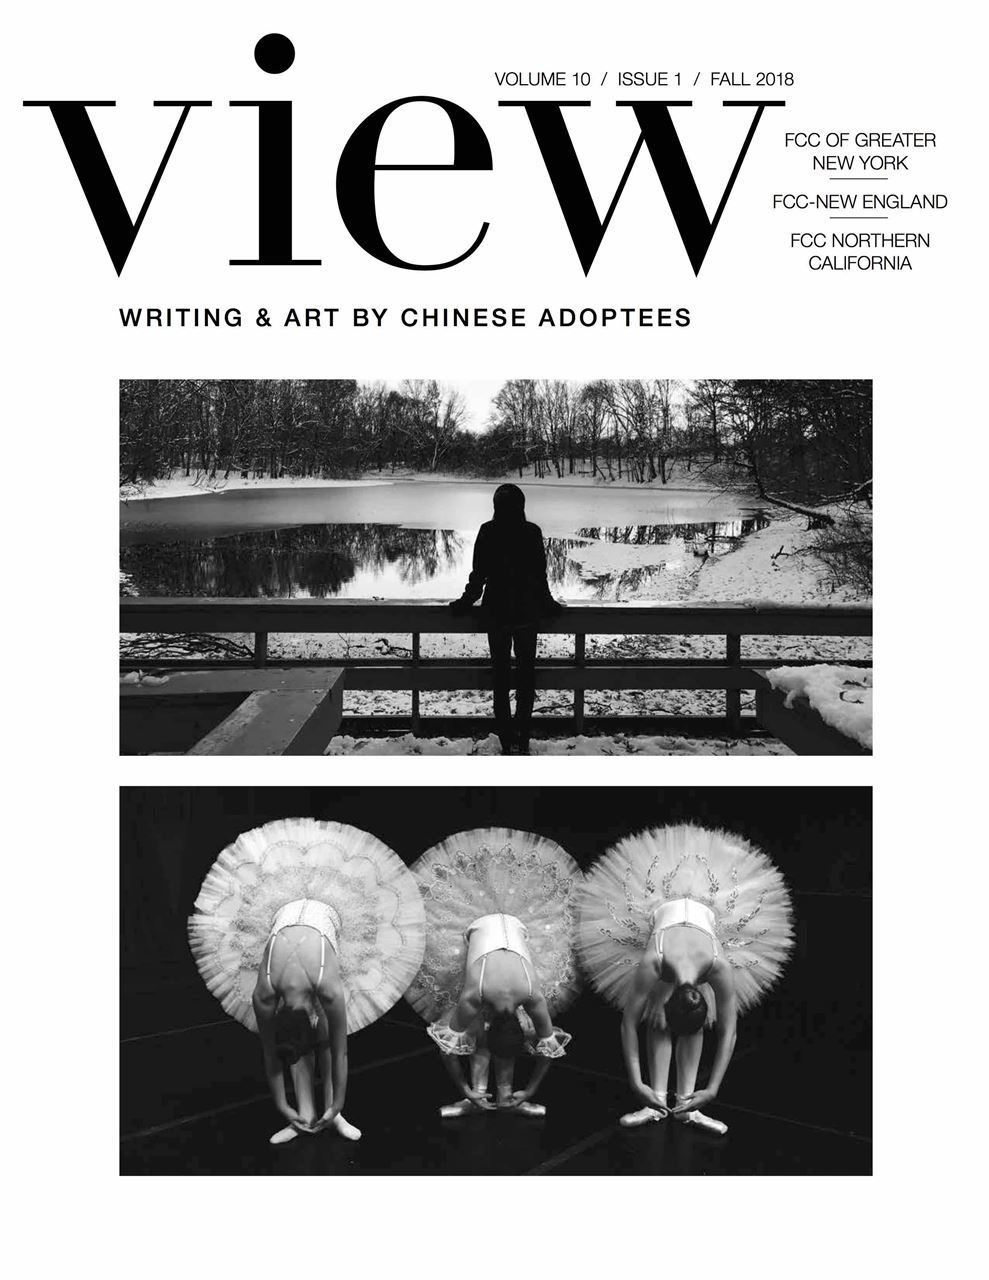 View 2018 cover